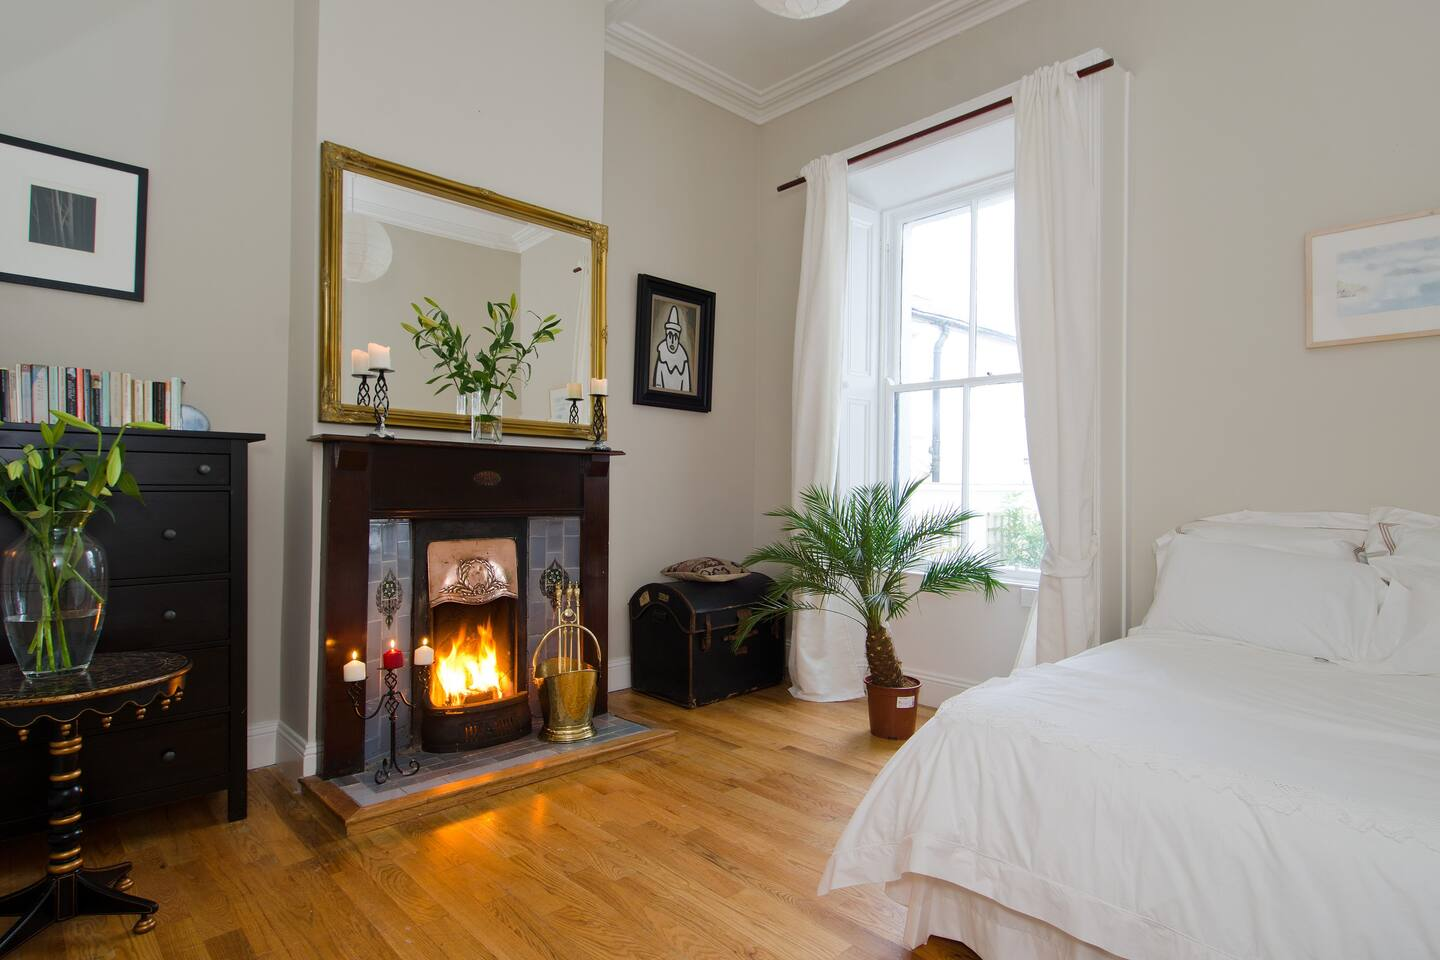 Spacious double bedroom with feature fireplace and high ceiling